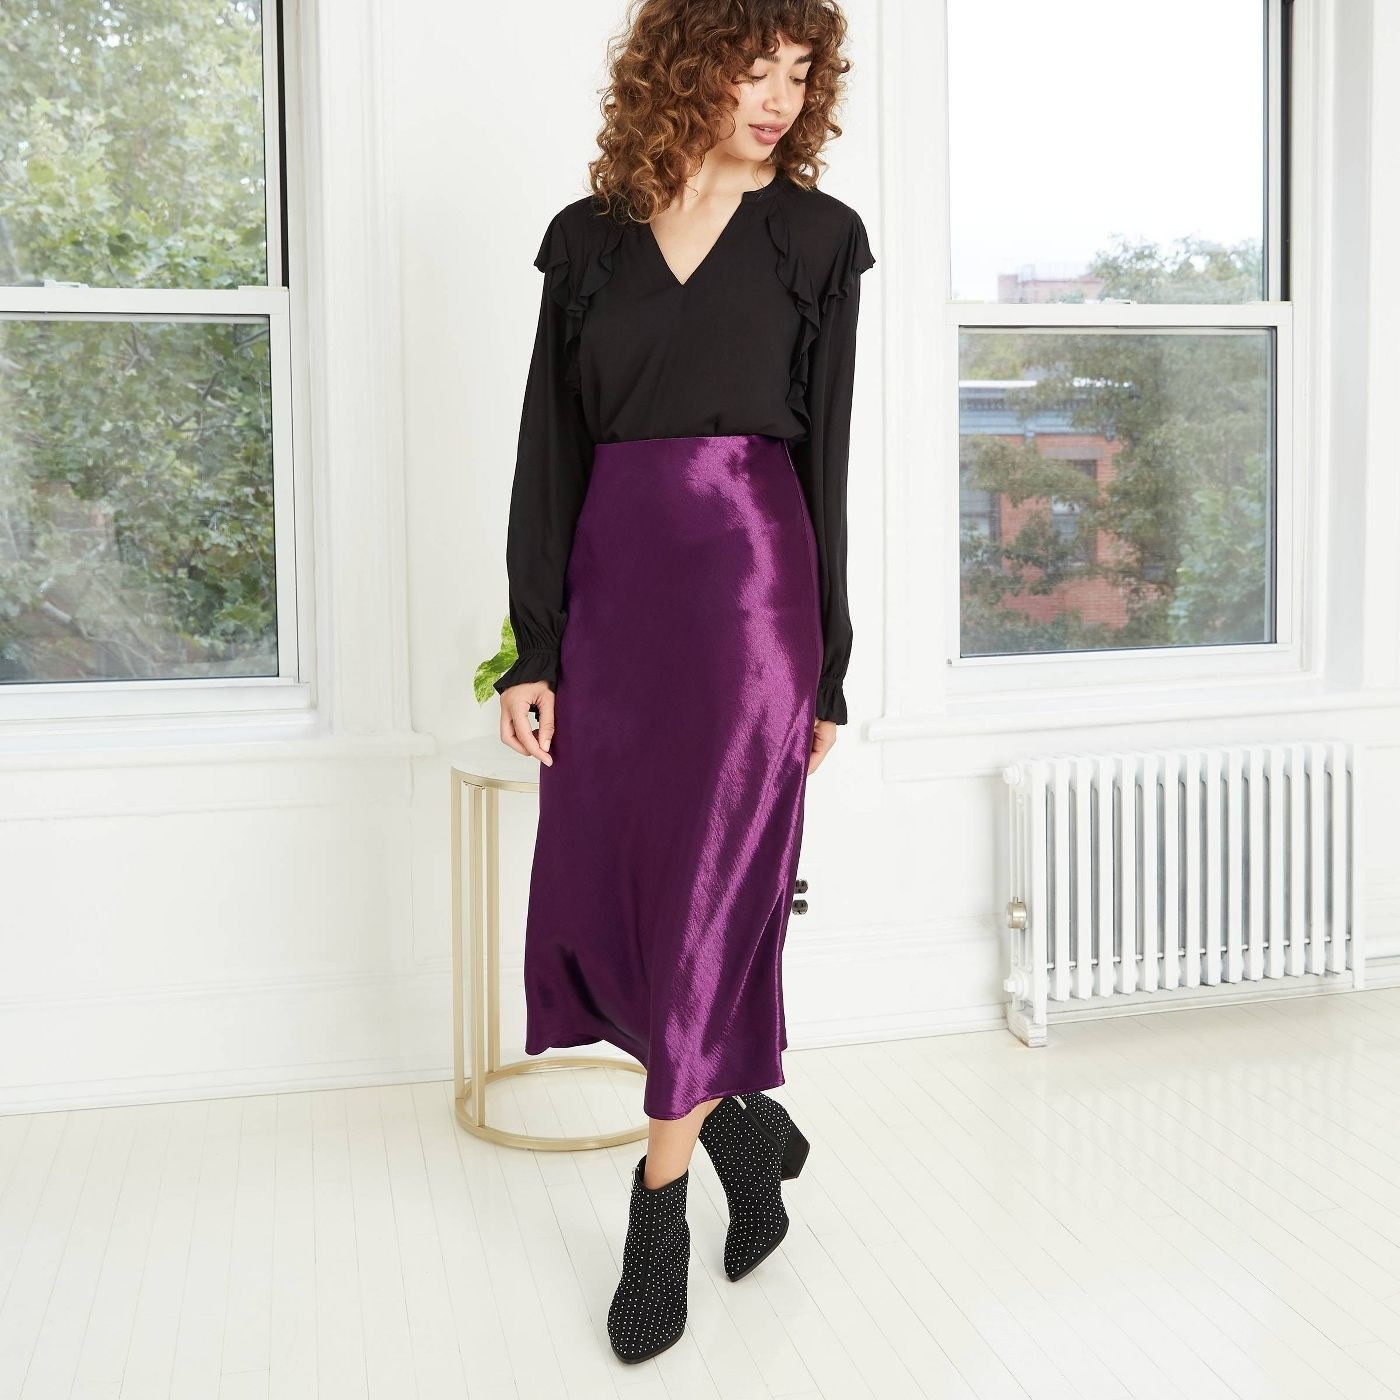 Moden in purple silky maxi skirt and black top